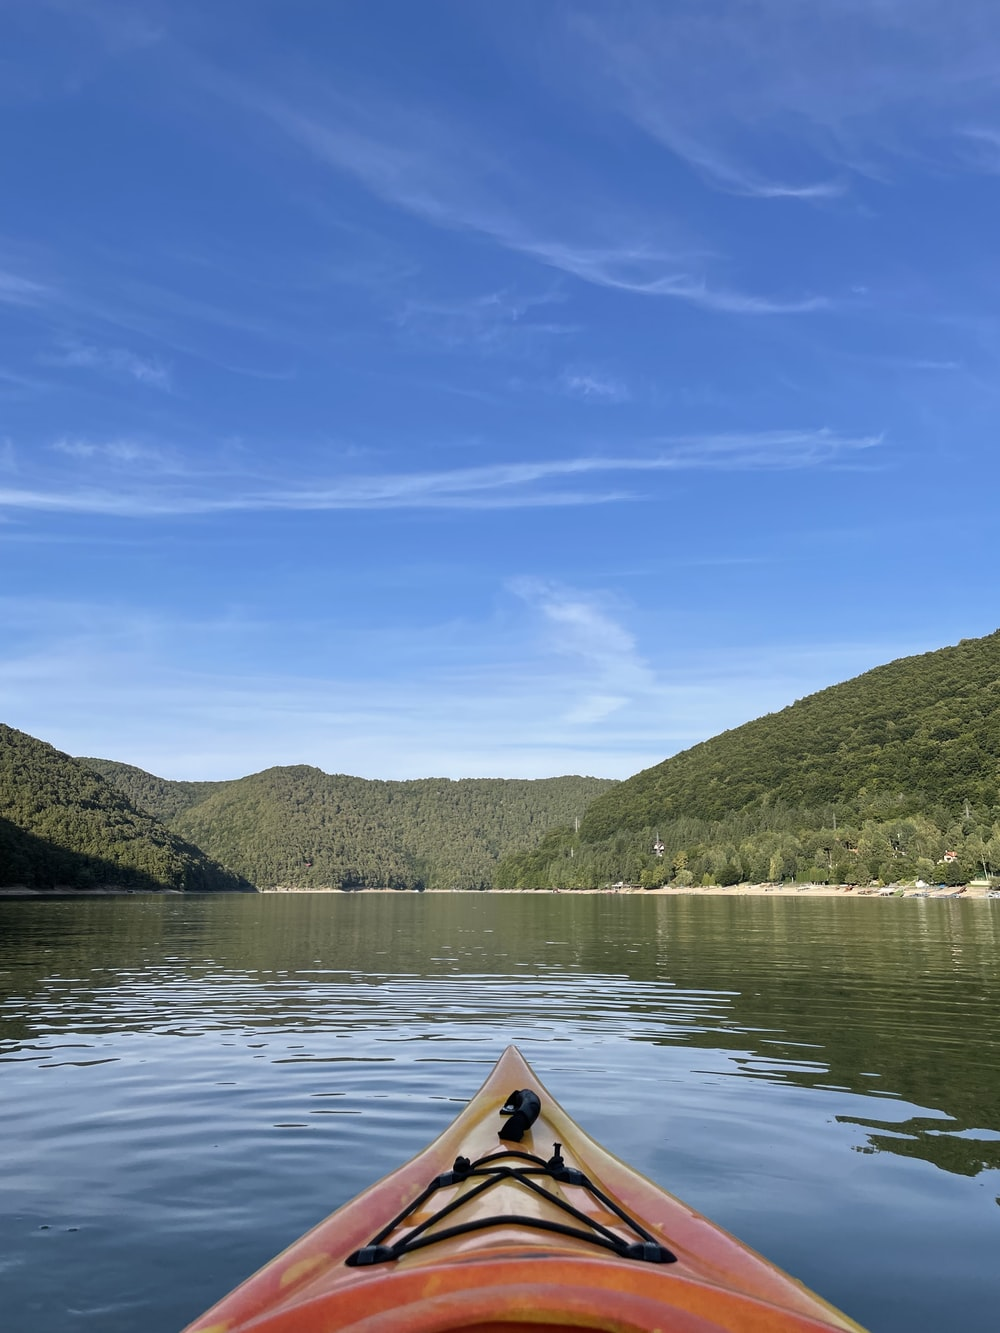 brown canoe on lake near green mountains under blue sky during daytime